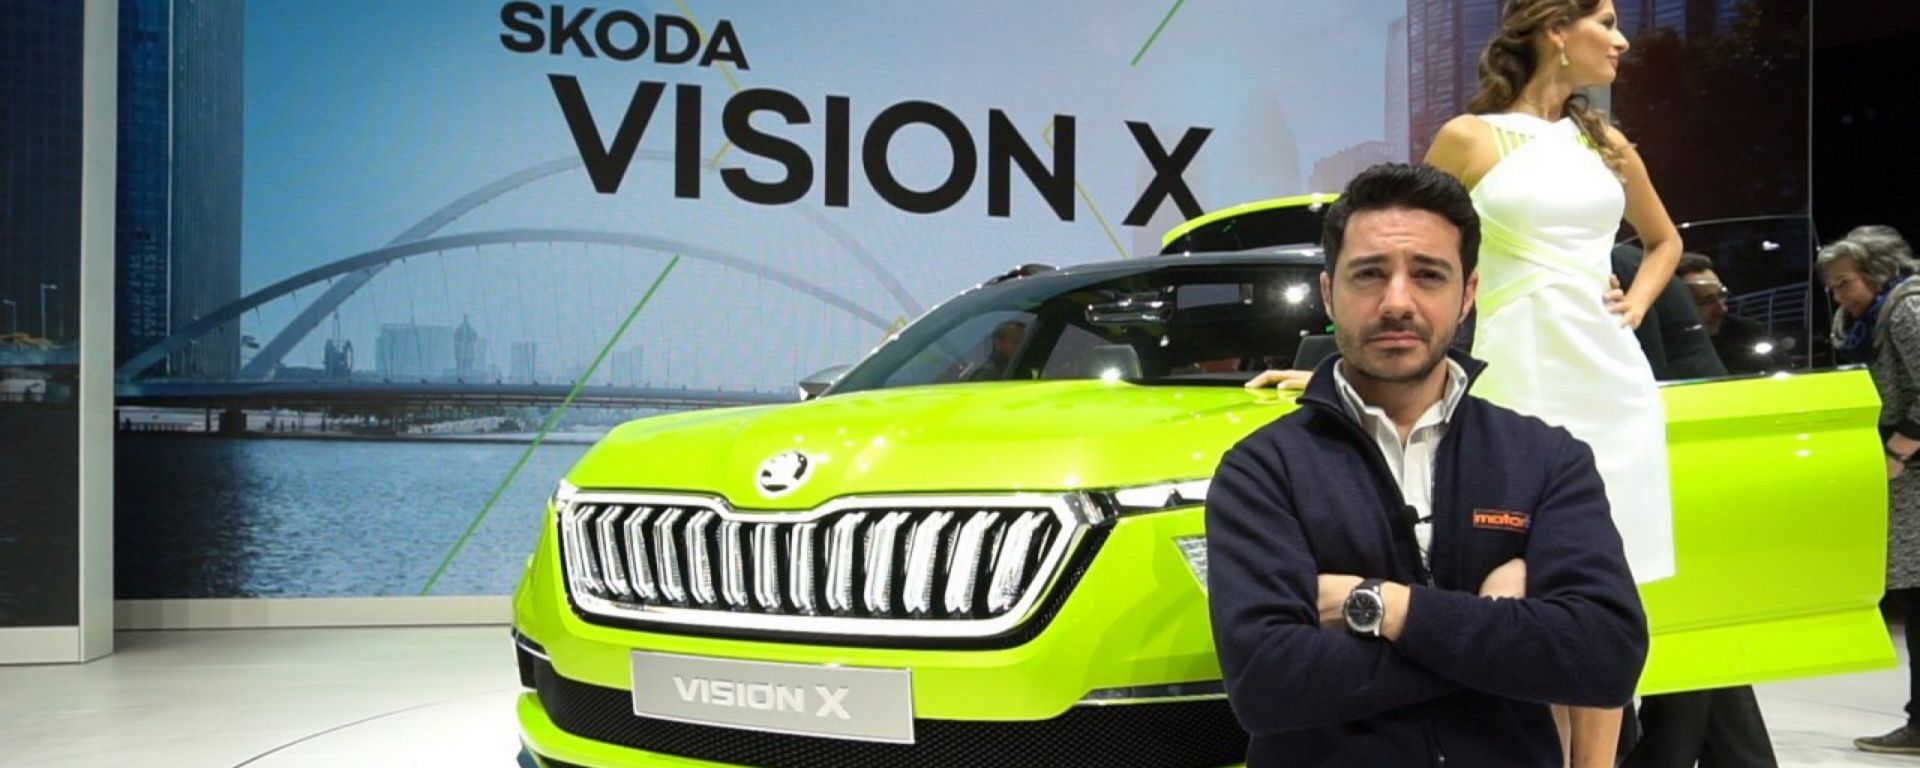 Skoda Vision X Concept: in video dal Salone di Ginevra 2018